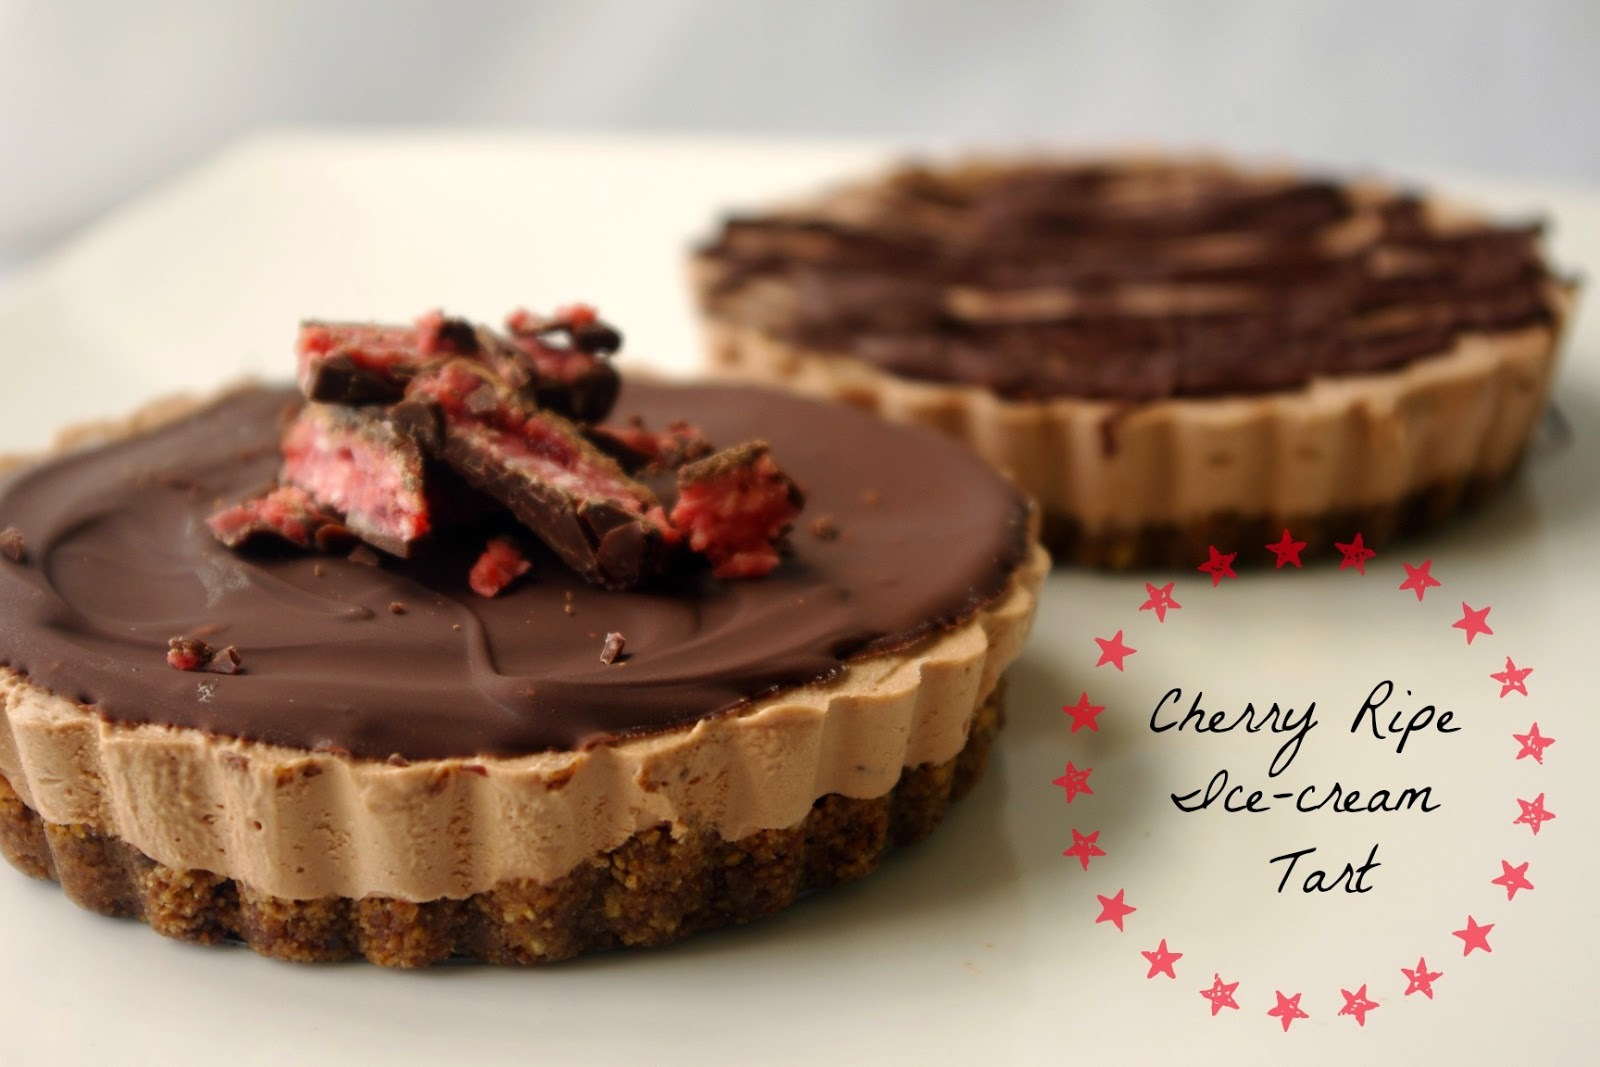 Cherry Ripe Ice-Cream Tart (using two-ingredient, no-churn ice-cream)